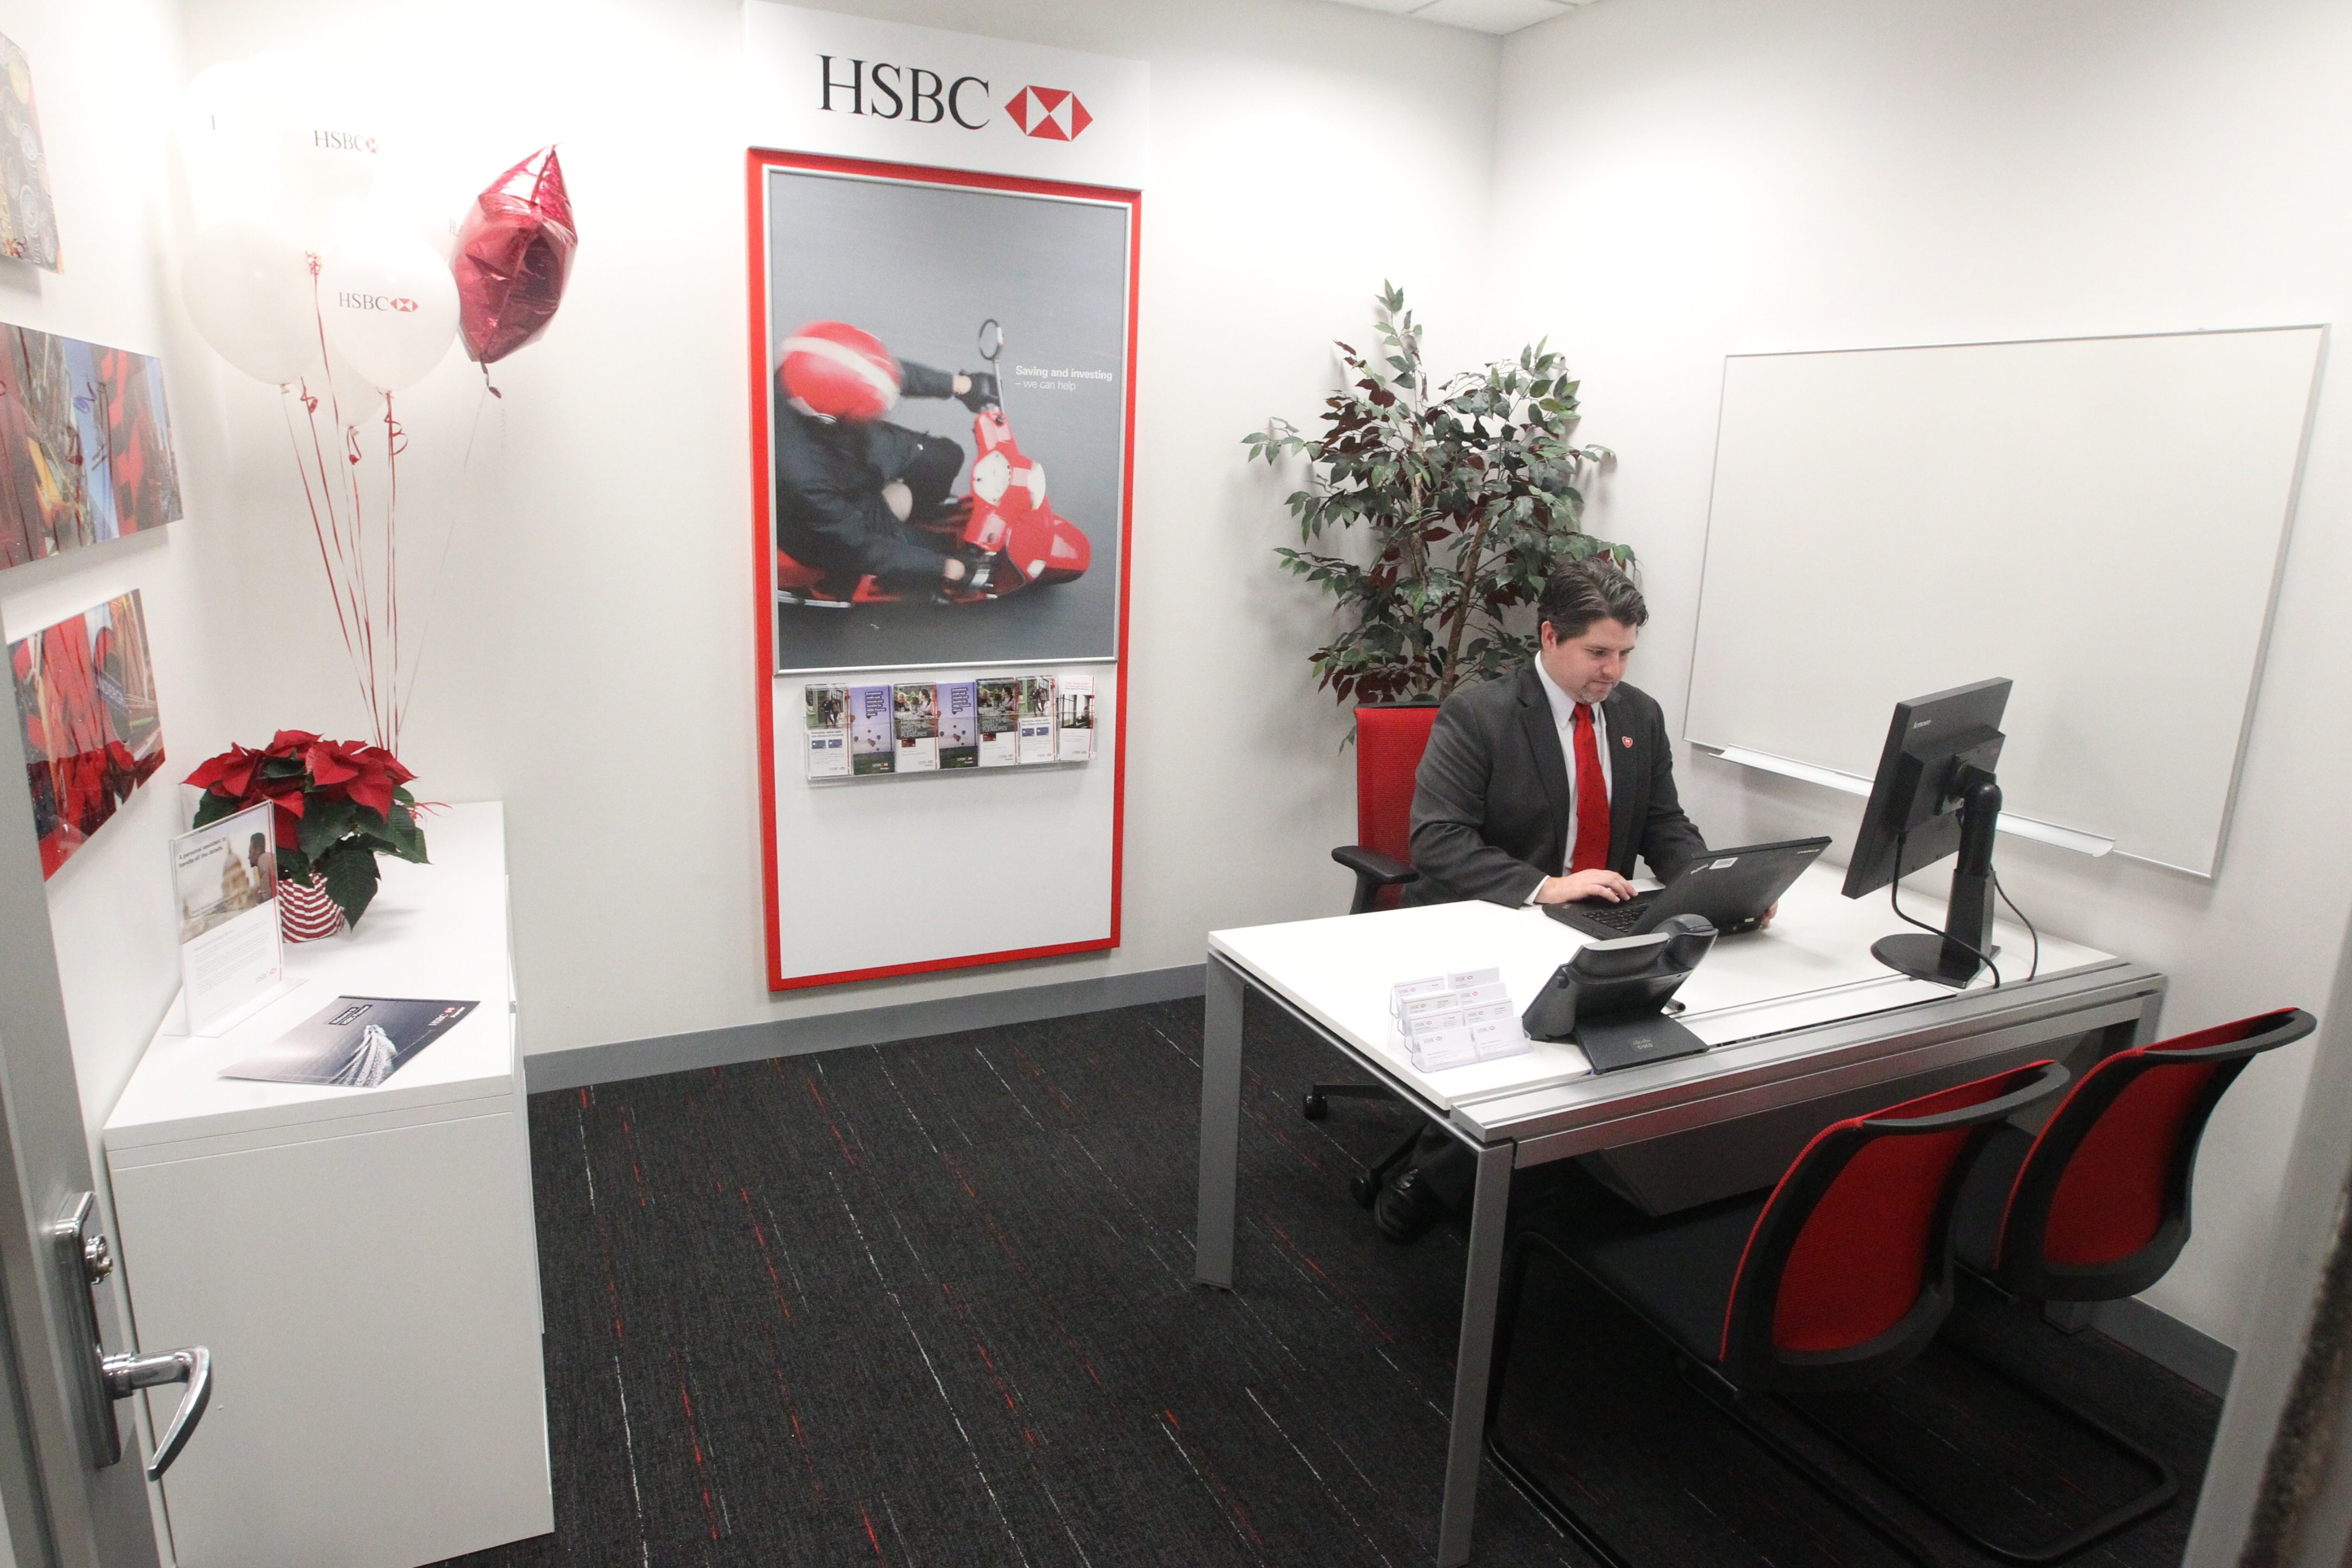 Alex Woods, a premier relationship manager for HSBC Bank USA, works at the refurbished space where a new employee financial ser- vices center was unveiled in offices at Walden Avenue and Dick Road. It makes it easier for staff members and families to be customers.